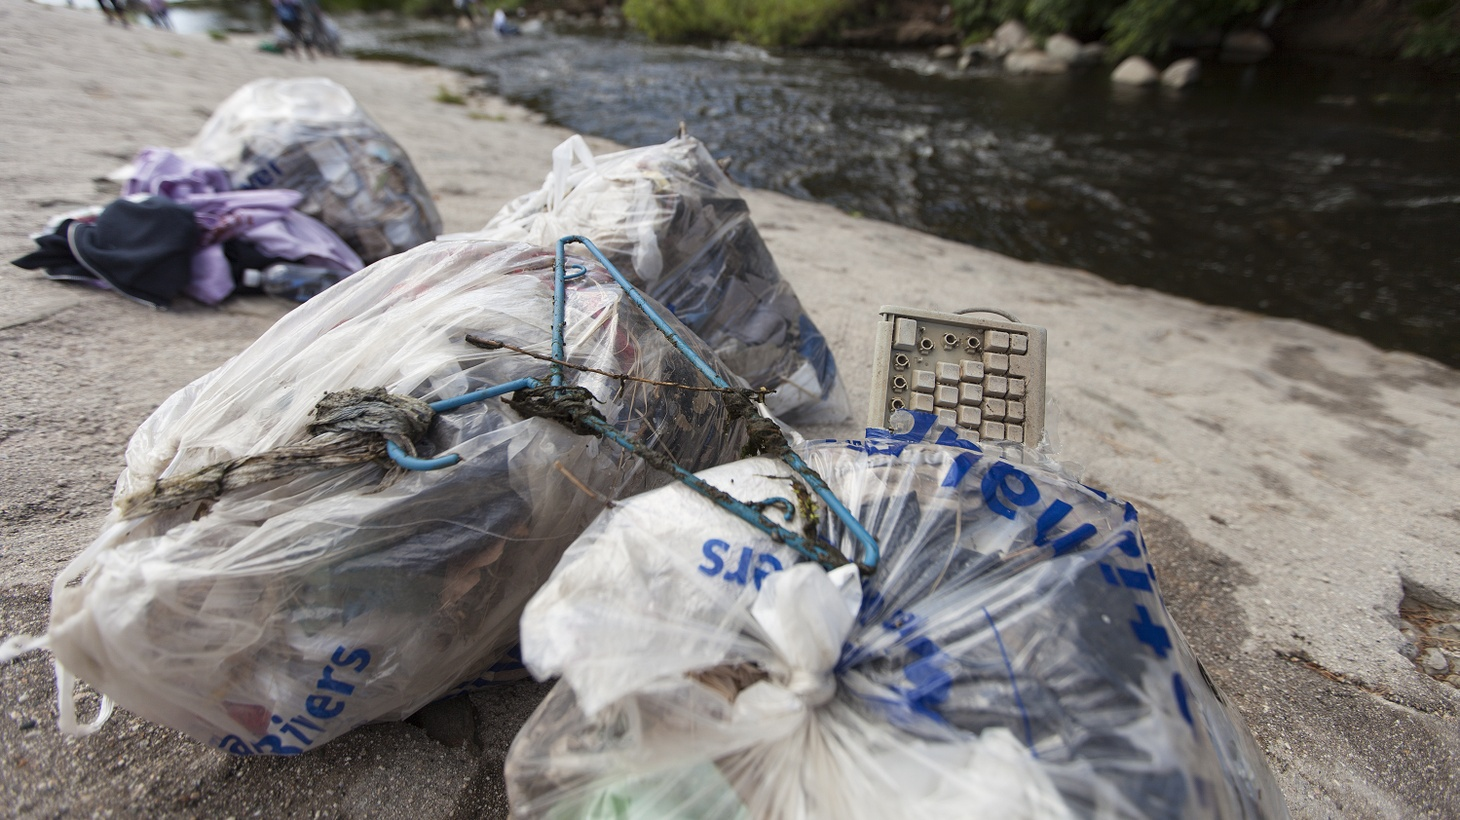 Bags of trash and waste removed from the Los Angeles river.